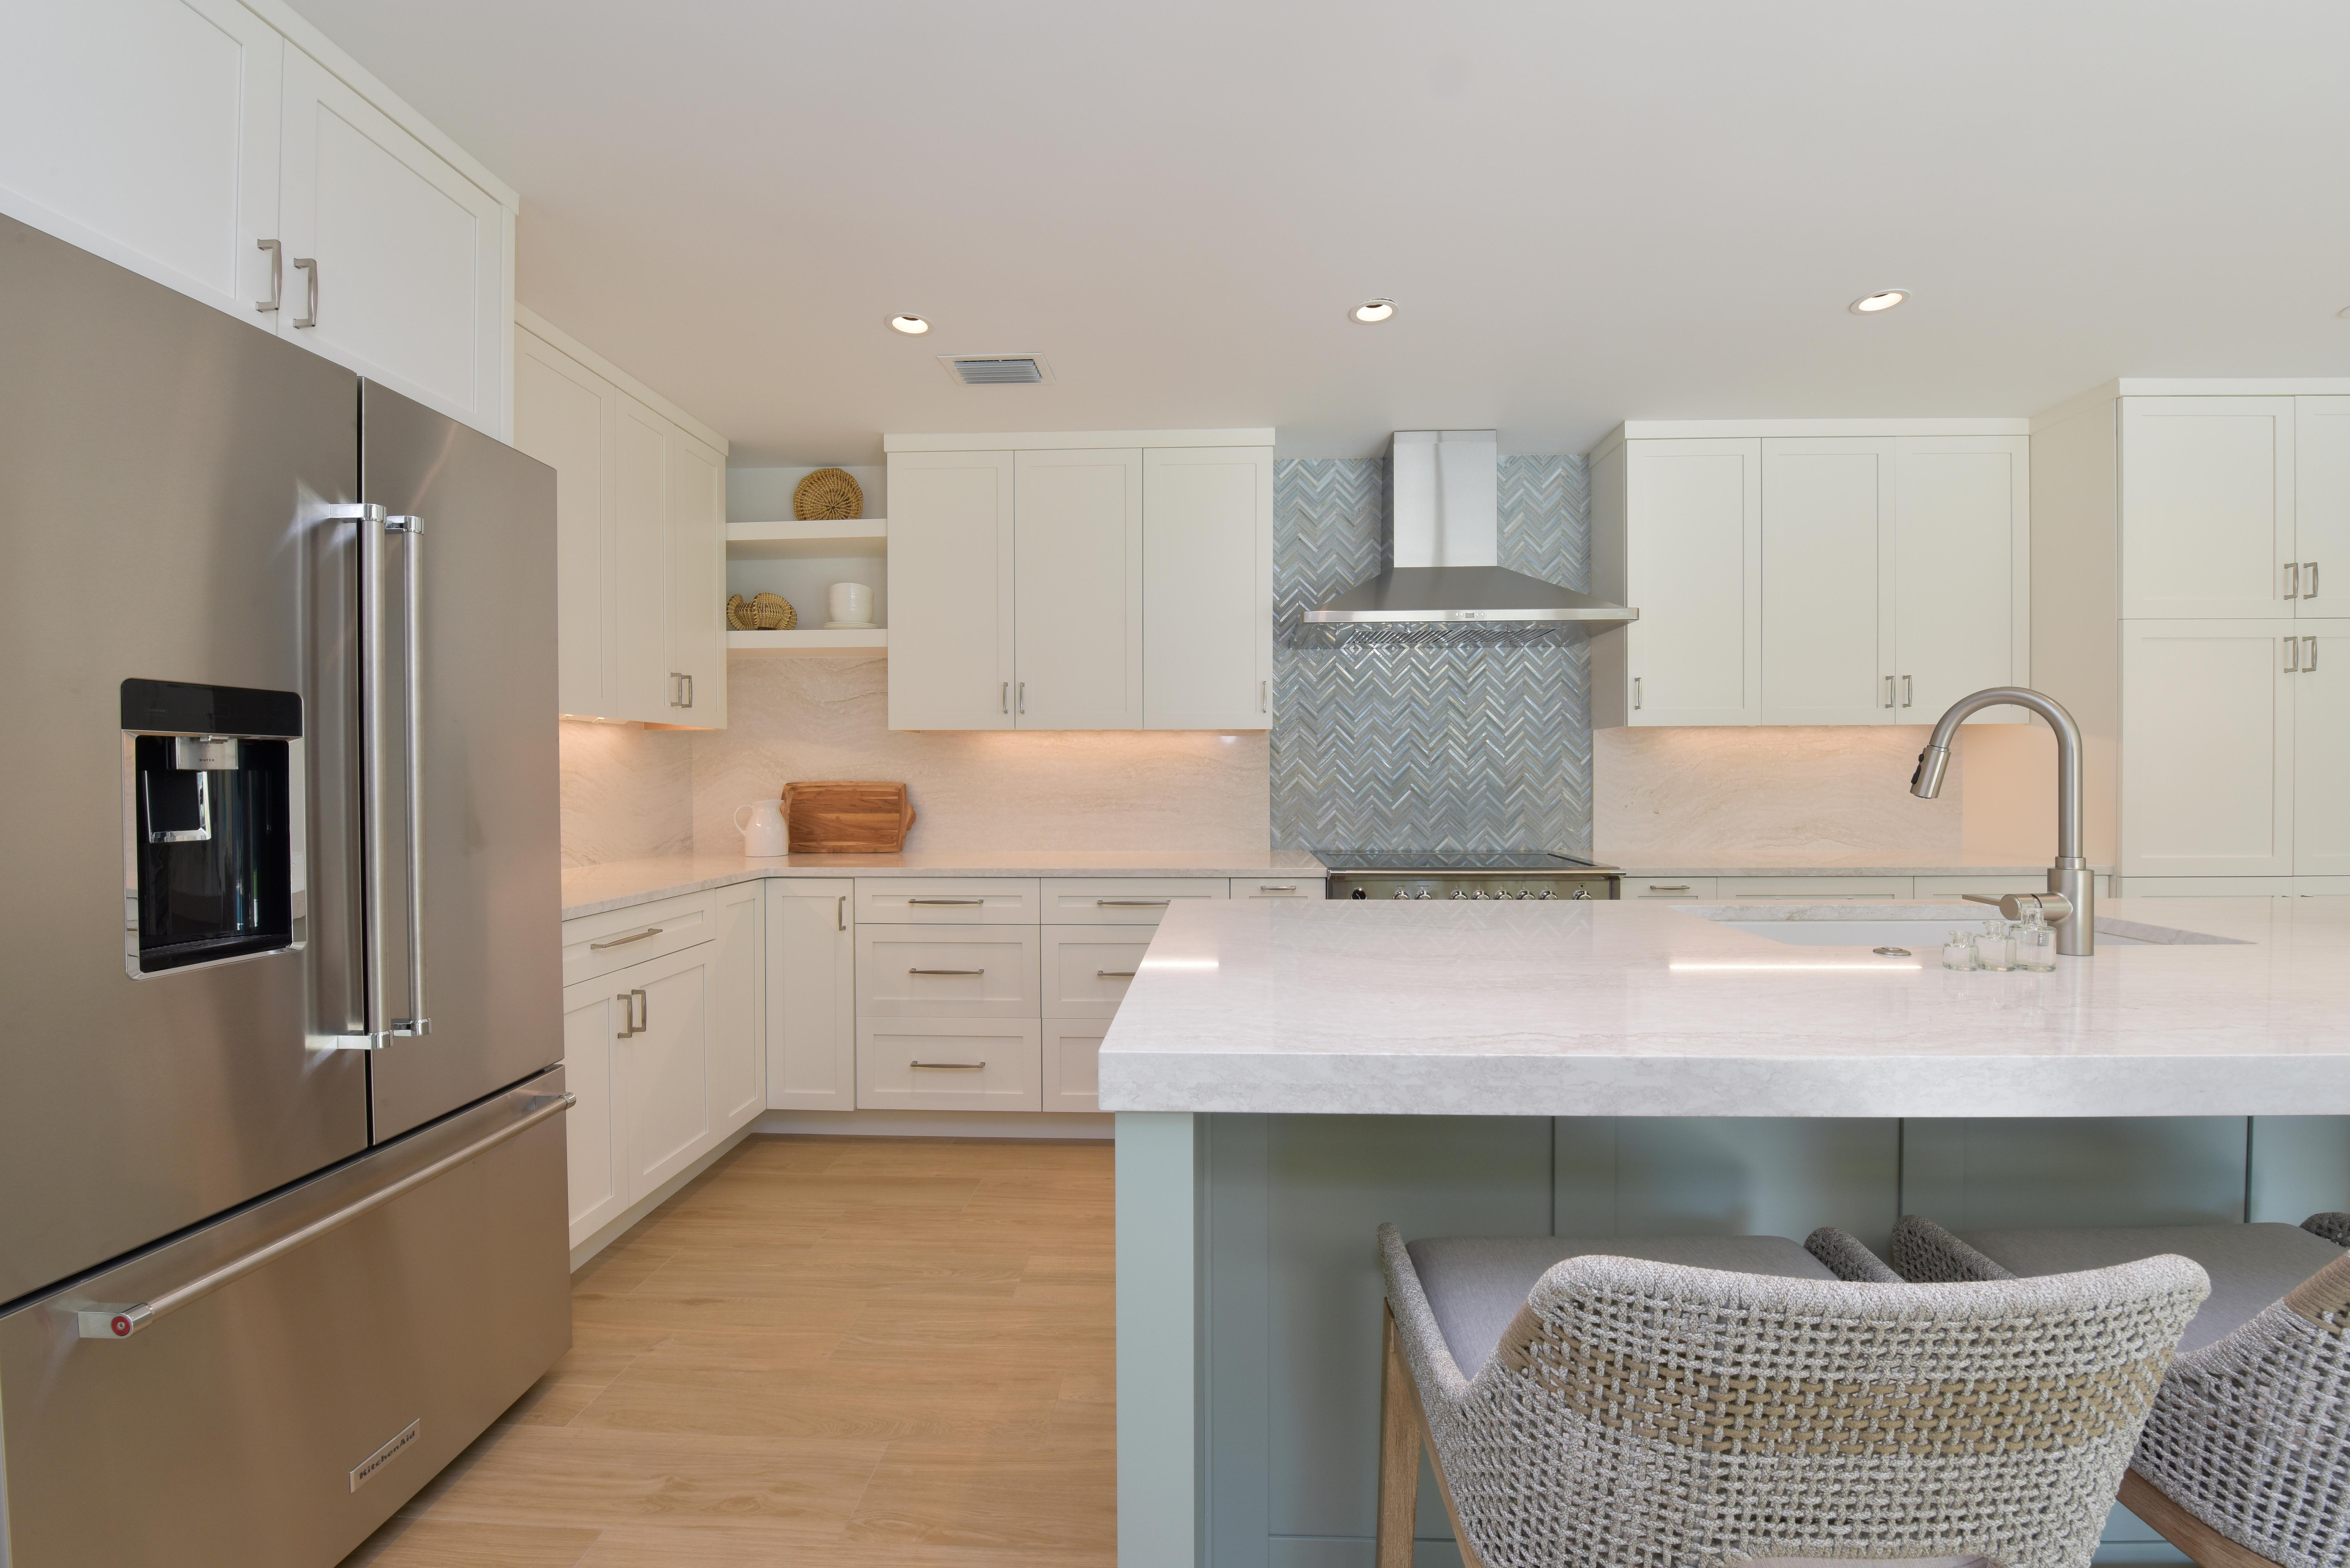 A kitchen with a tiled backsplash behind the stove.